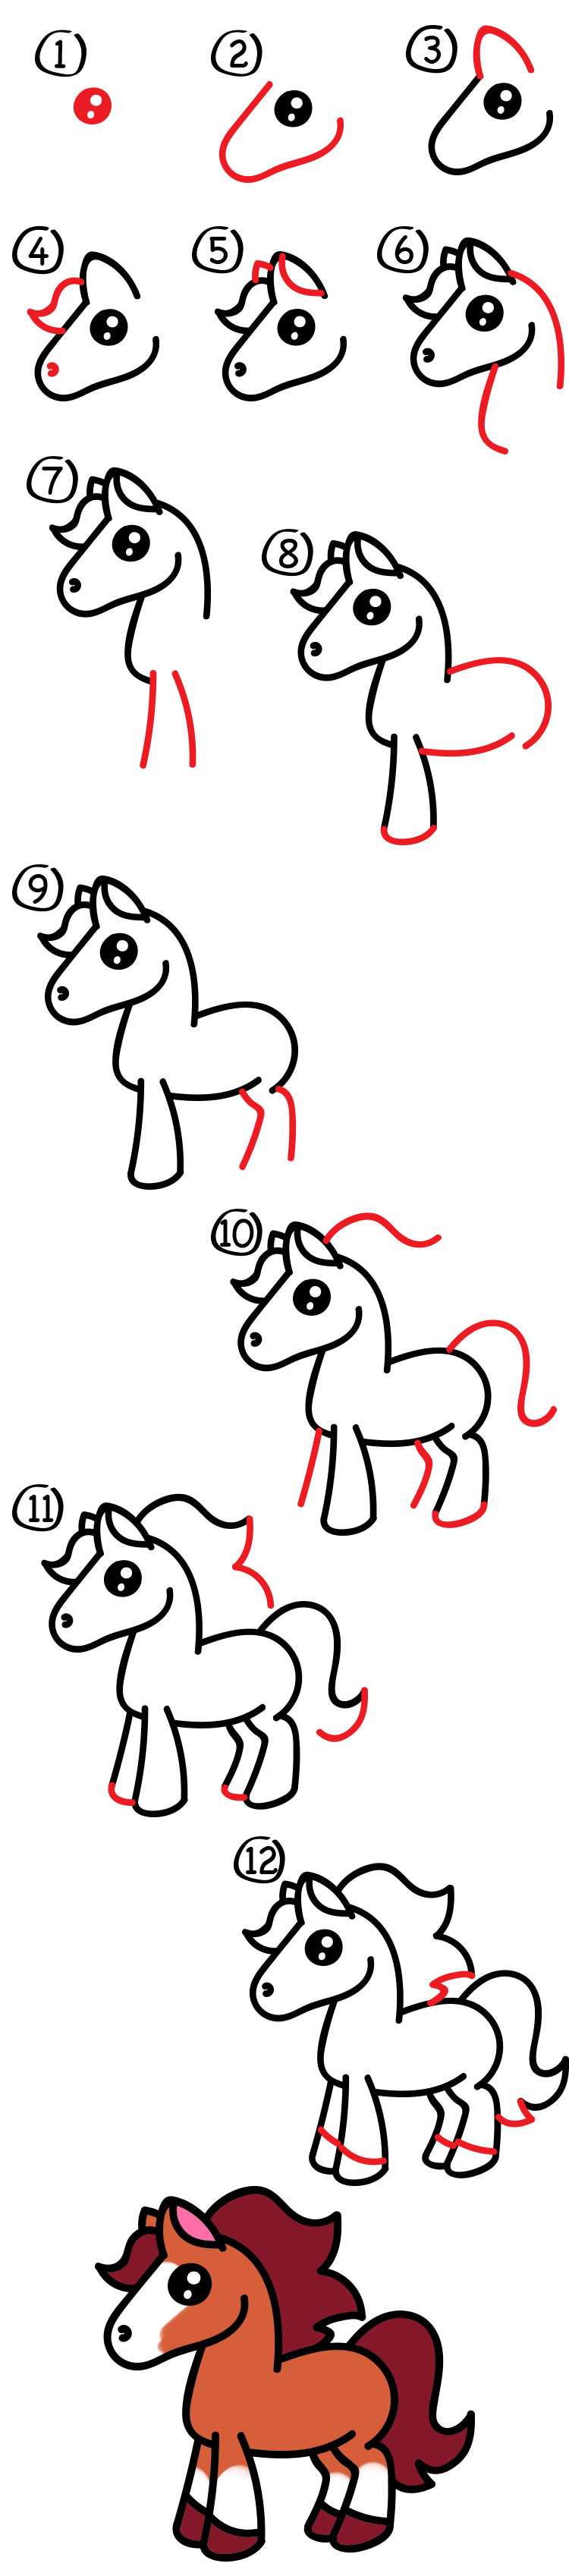 How To Draw A Cartoon Horse Art For Kids Hub